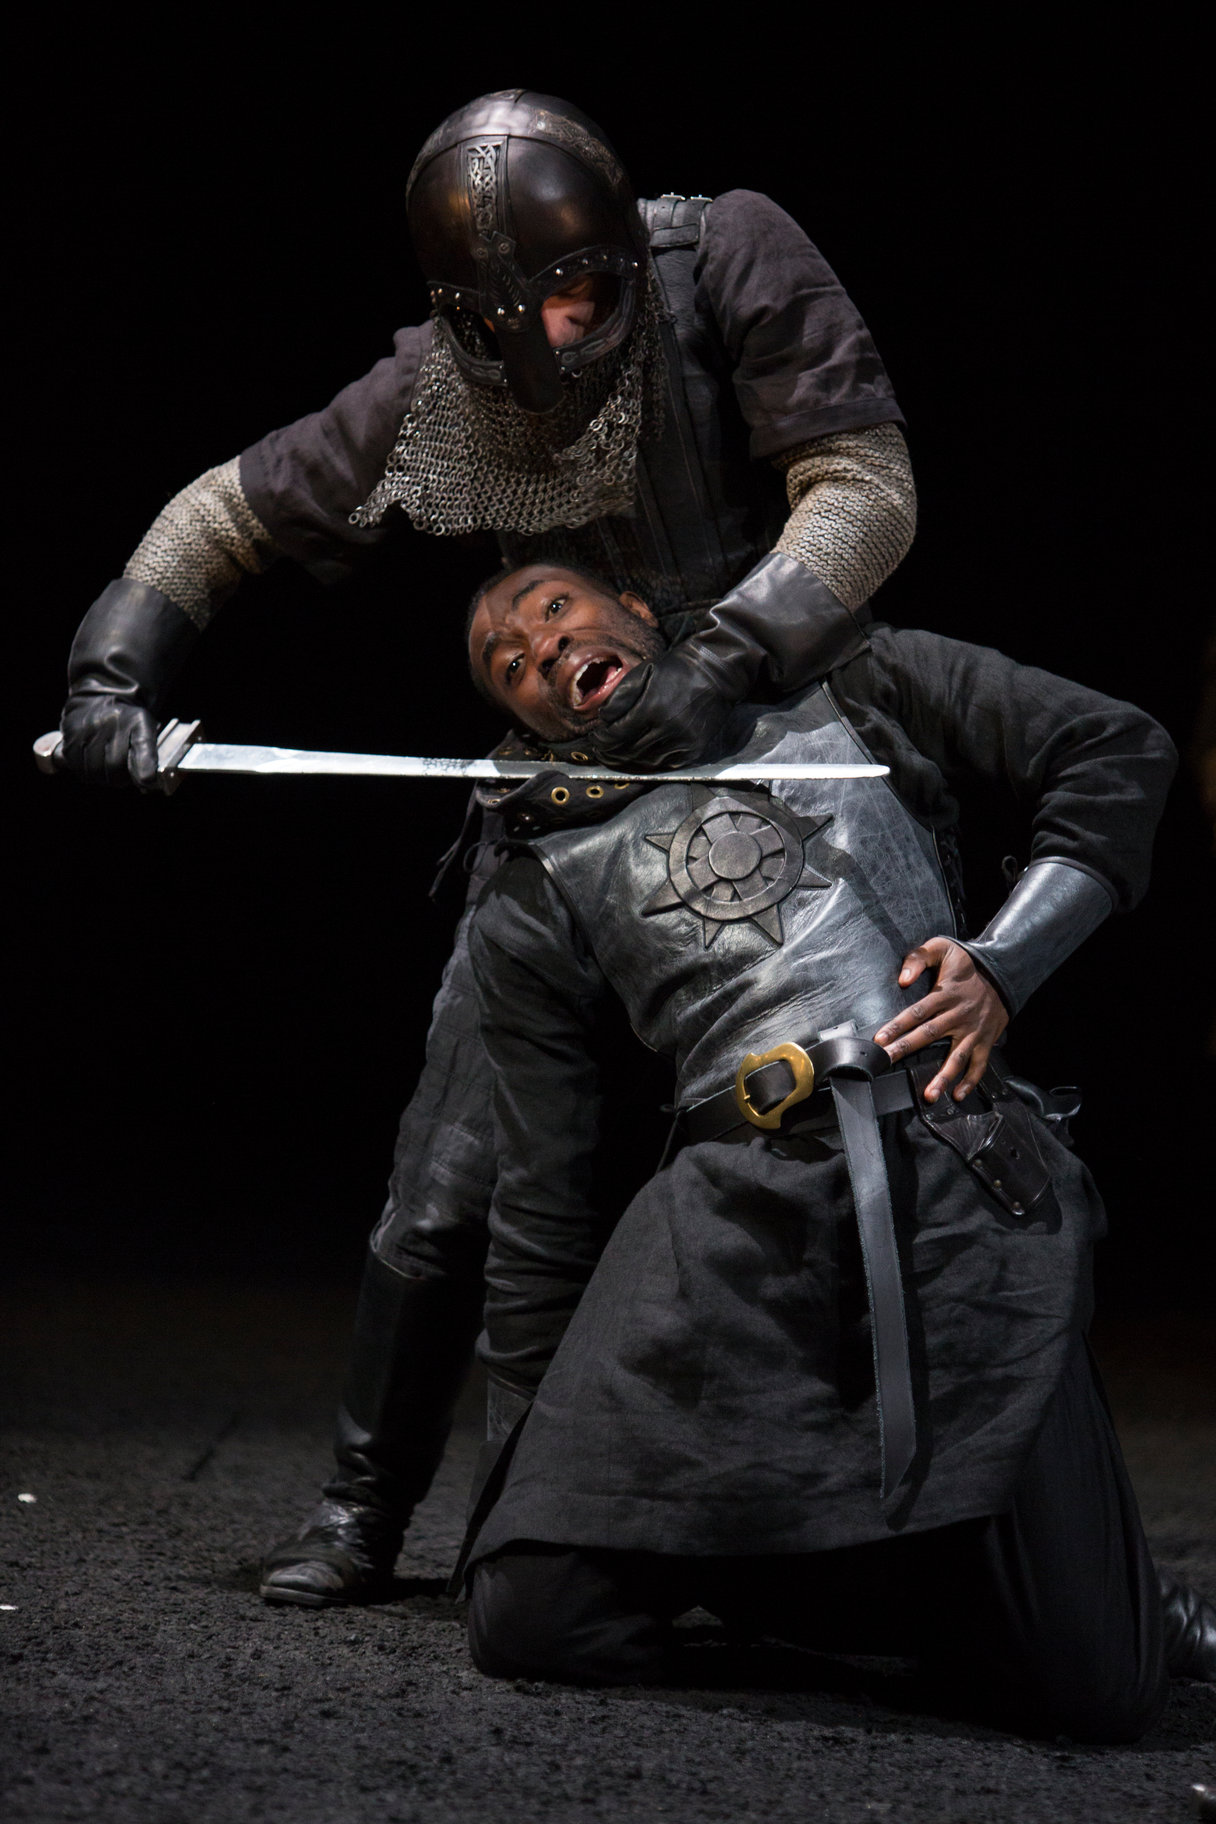 A knight in full armour holds a sword to a man's throat.